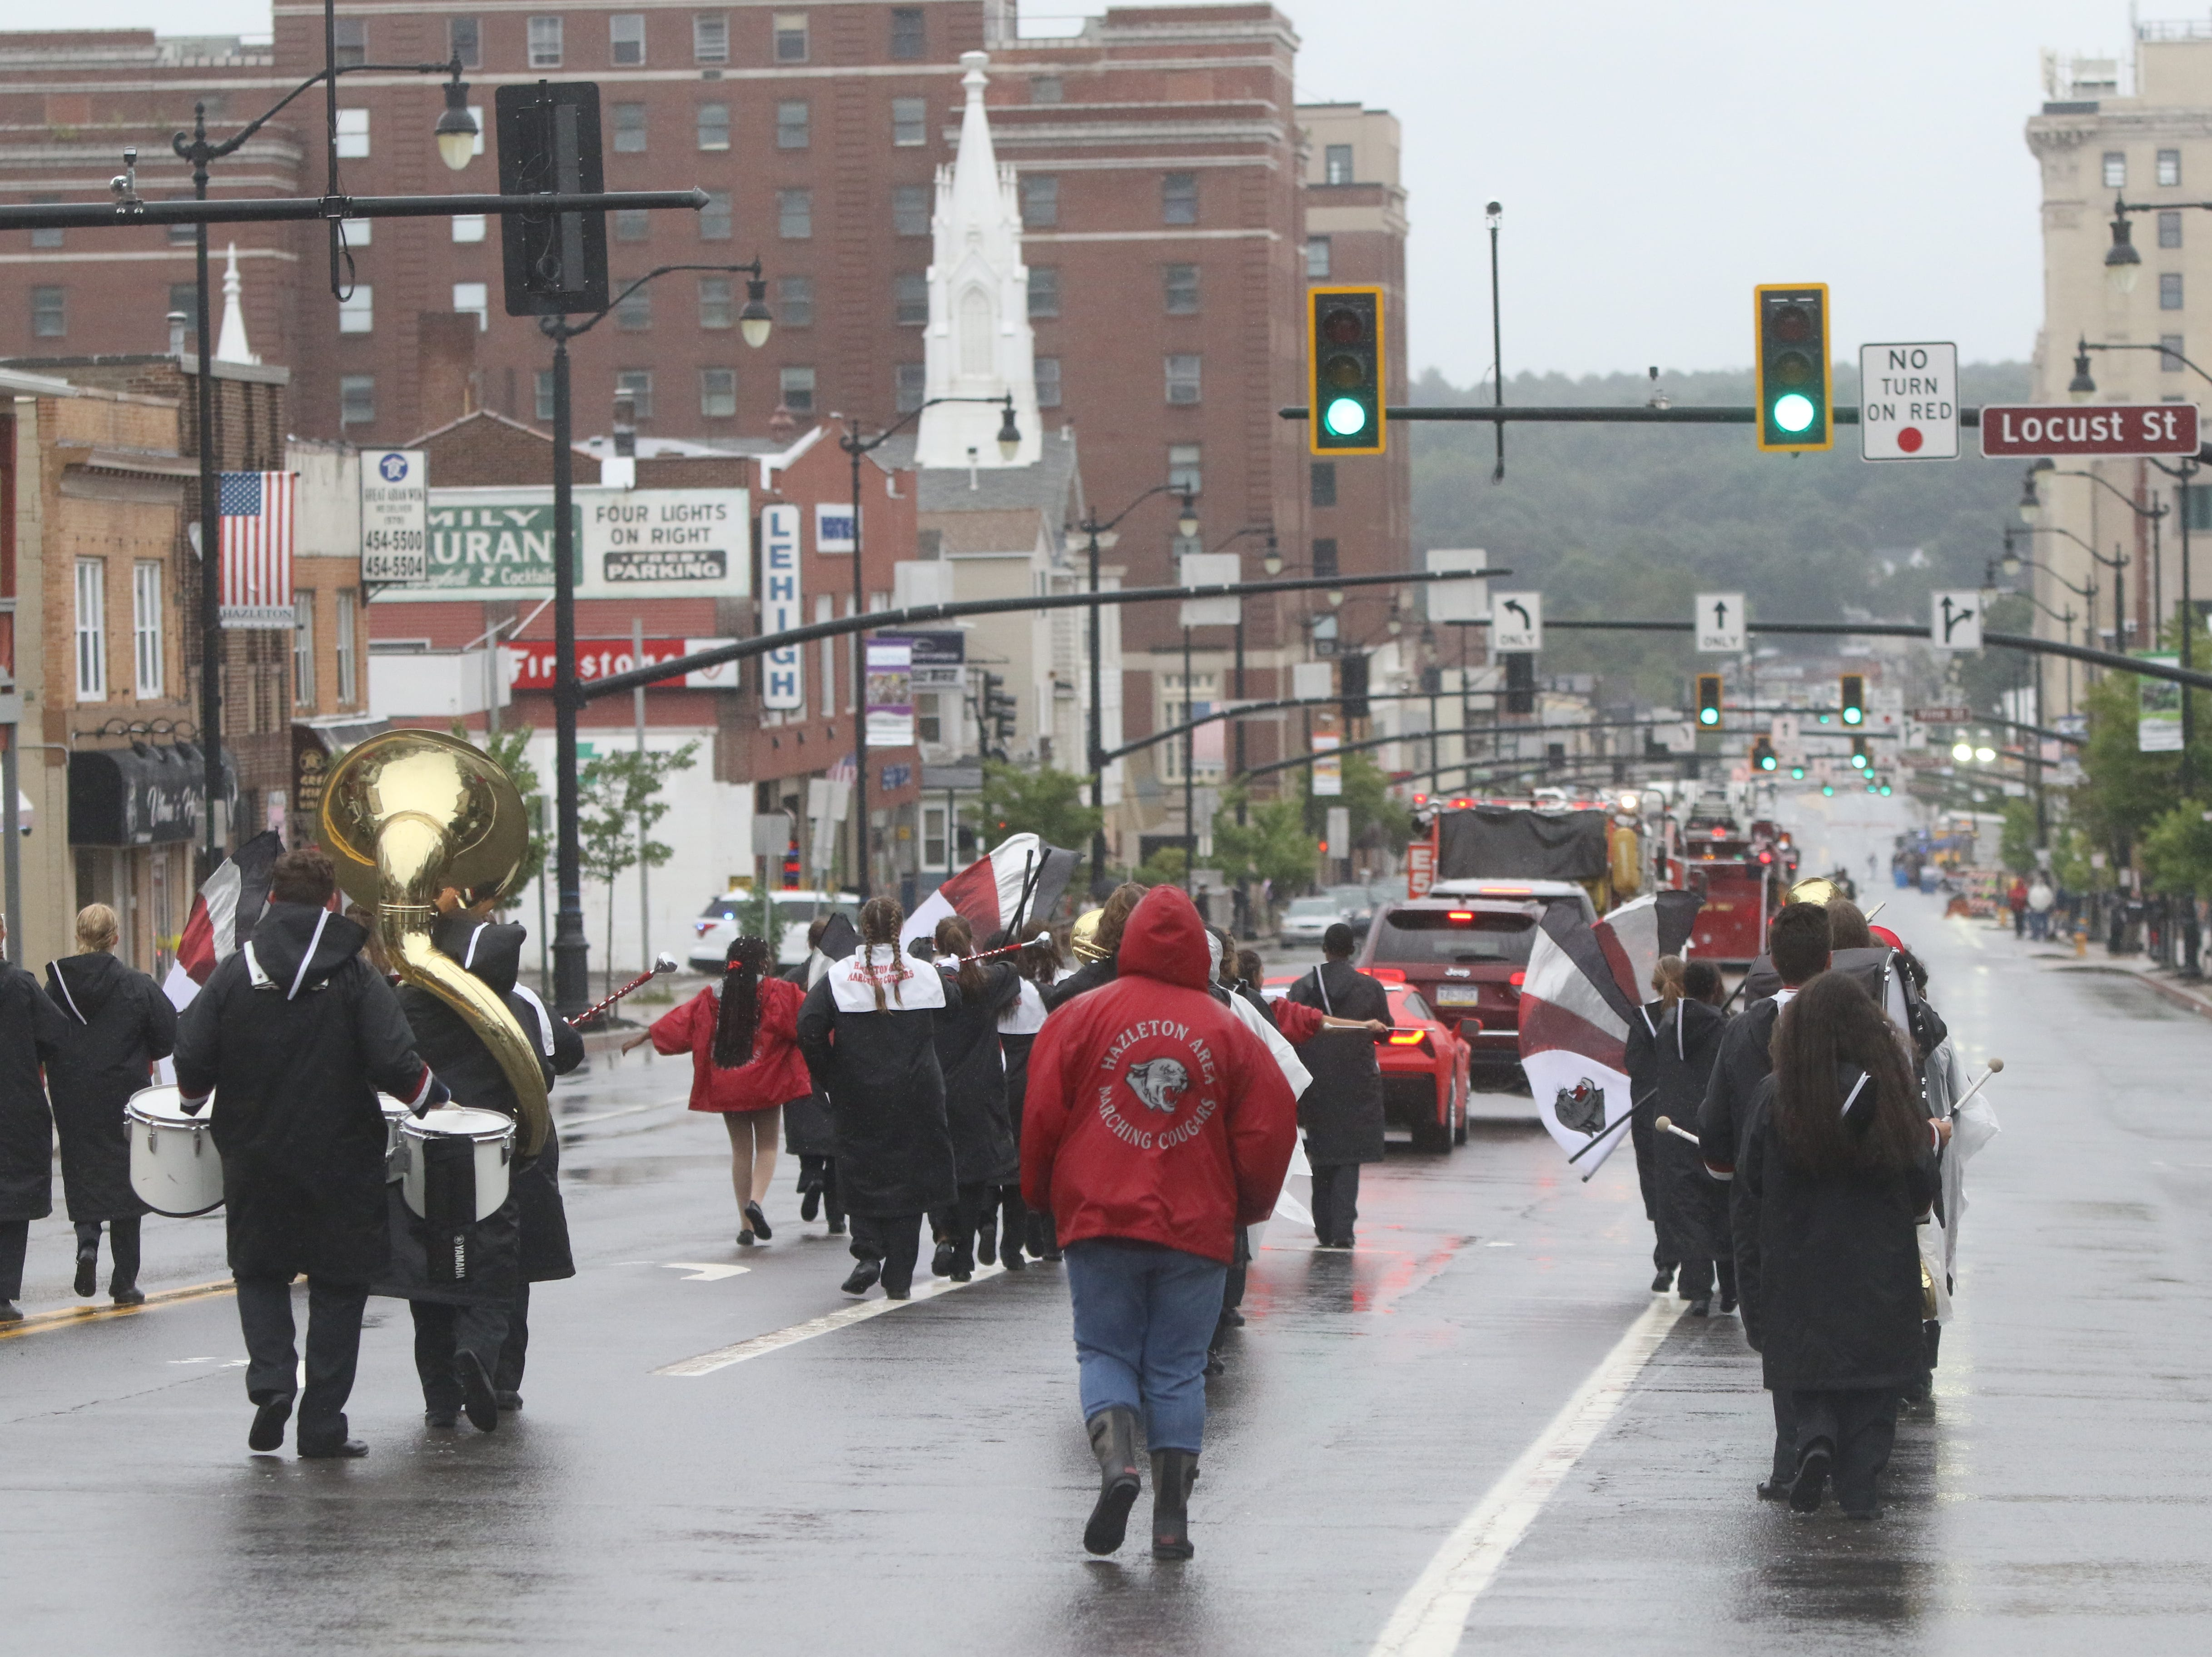 The Hazleton High School marching band make their way along Susquehanna Blvd. as part of the Hazleton Funfest Parade in the rain. Long time Hazleton locals and members of the Hispanic community march through town to celebrate the community of Hazleton.